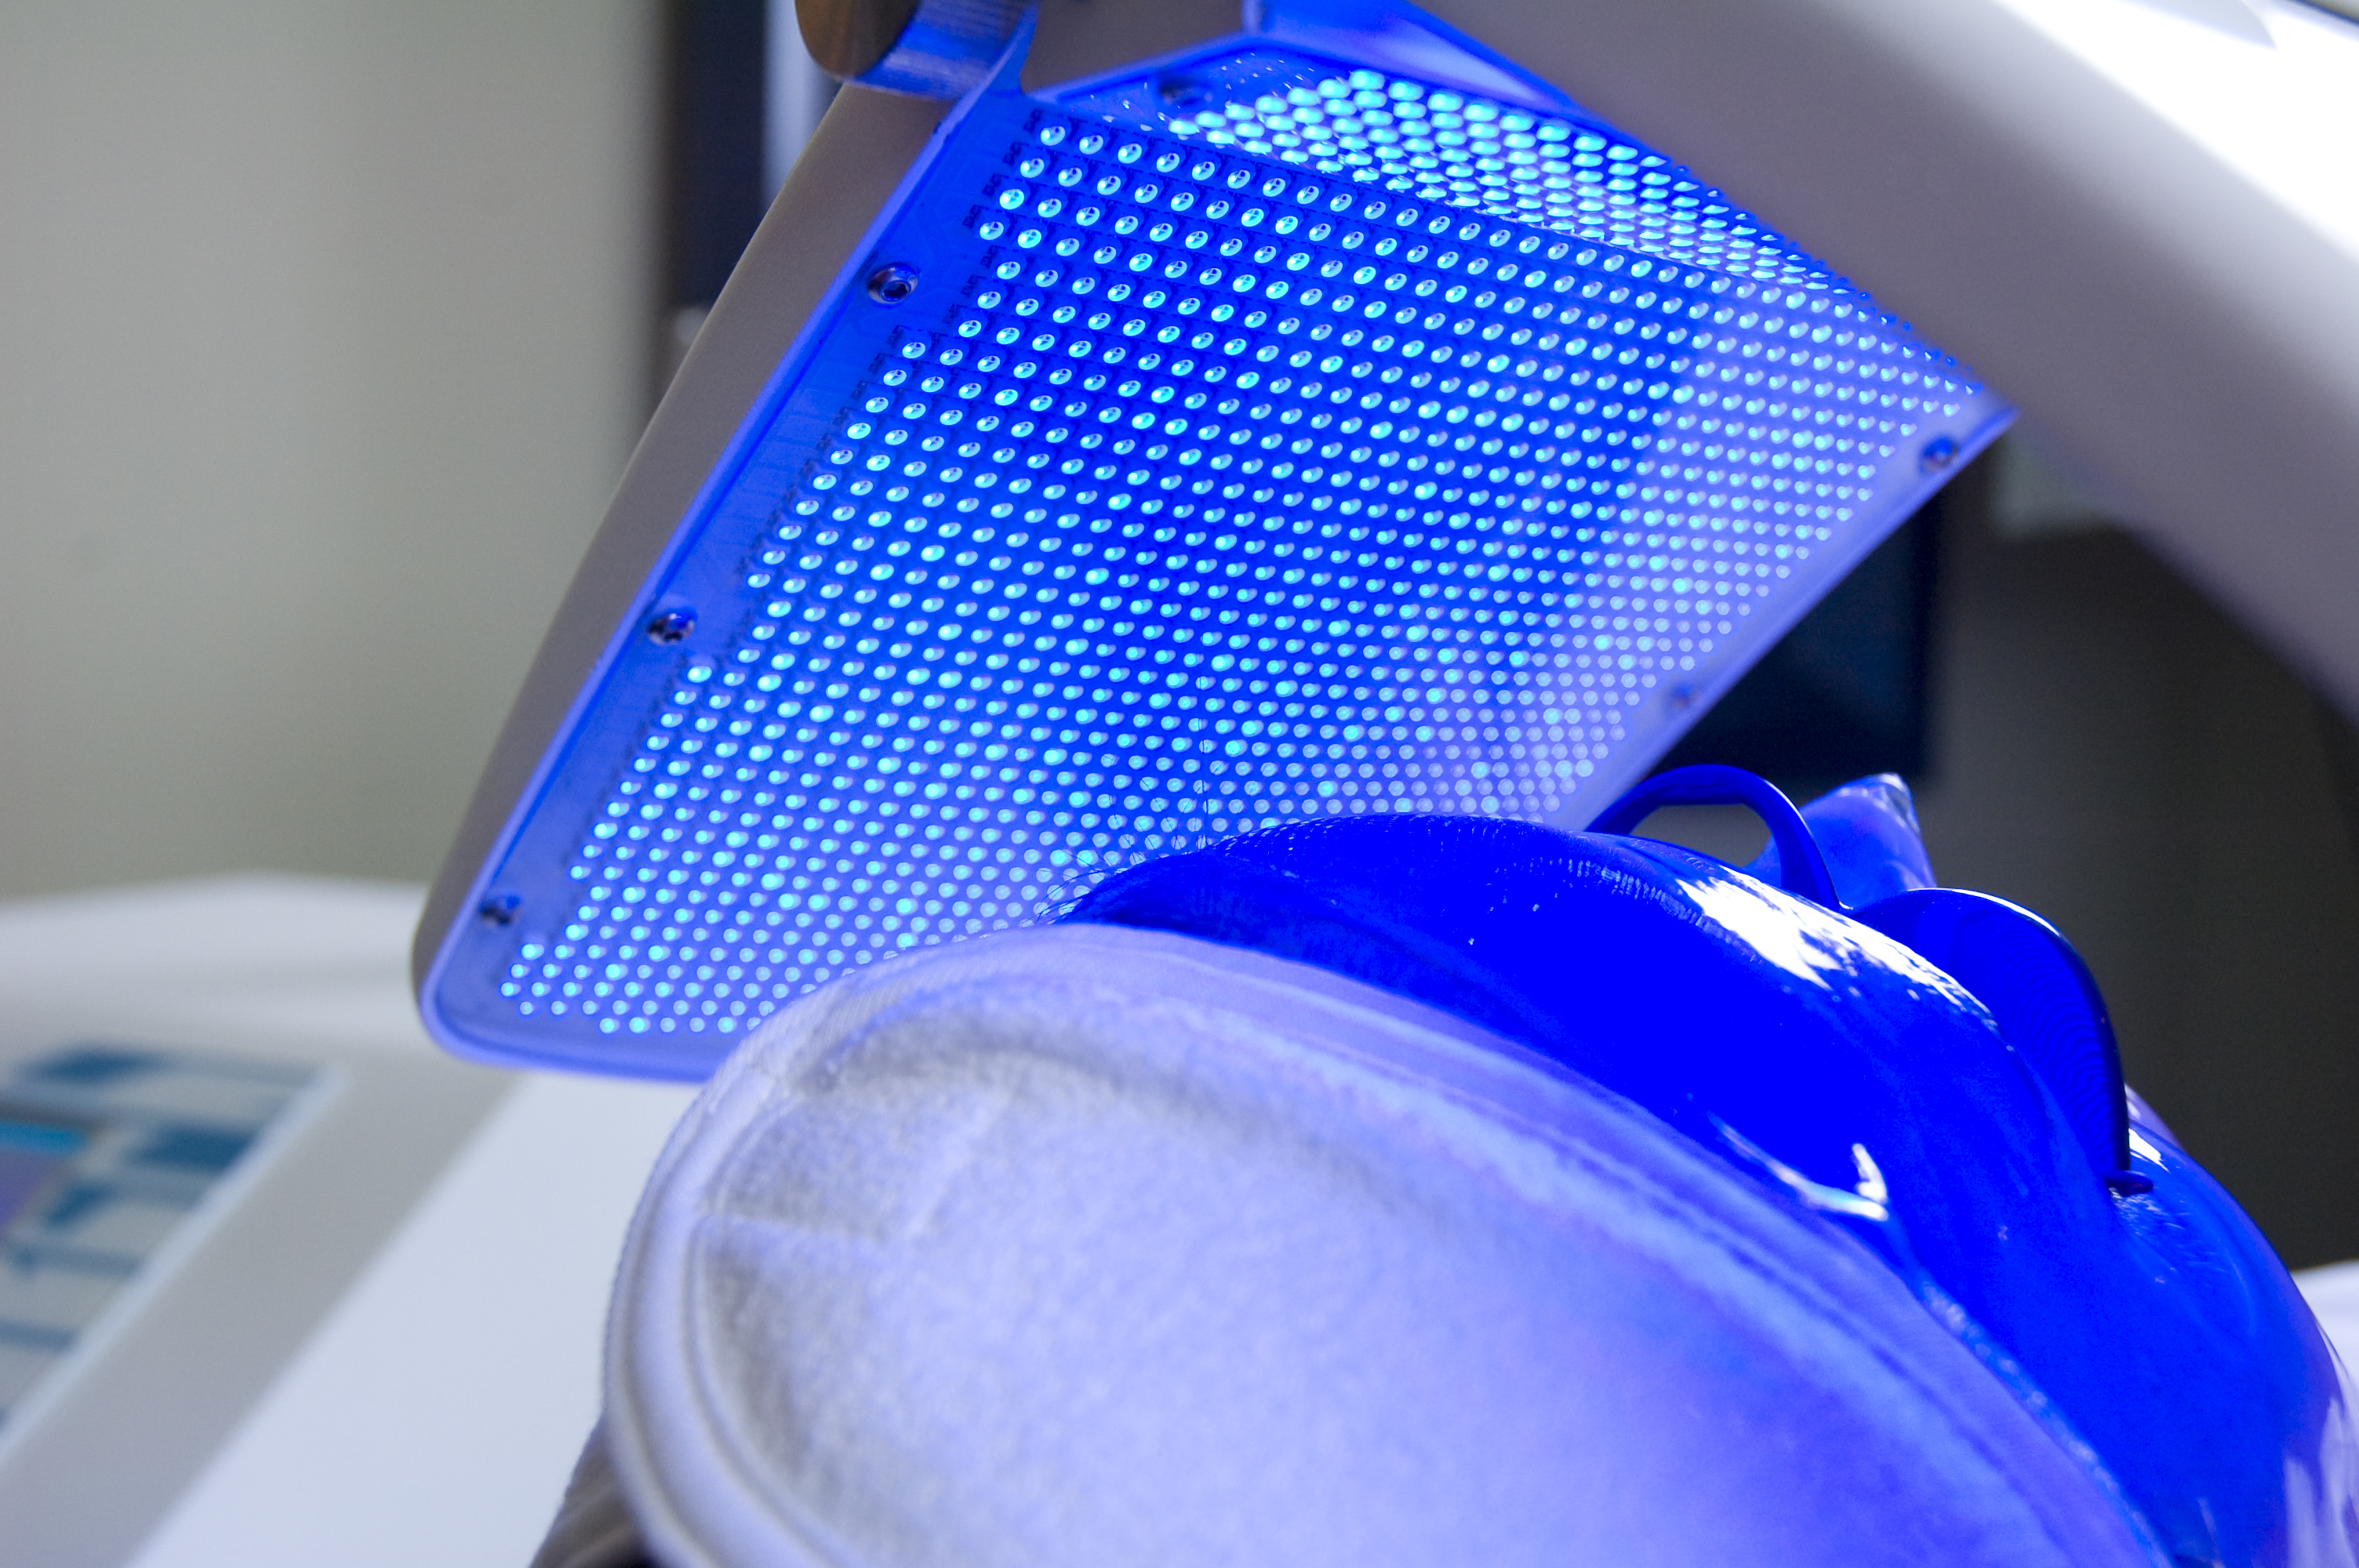 Deconstructing LED Light Therapy